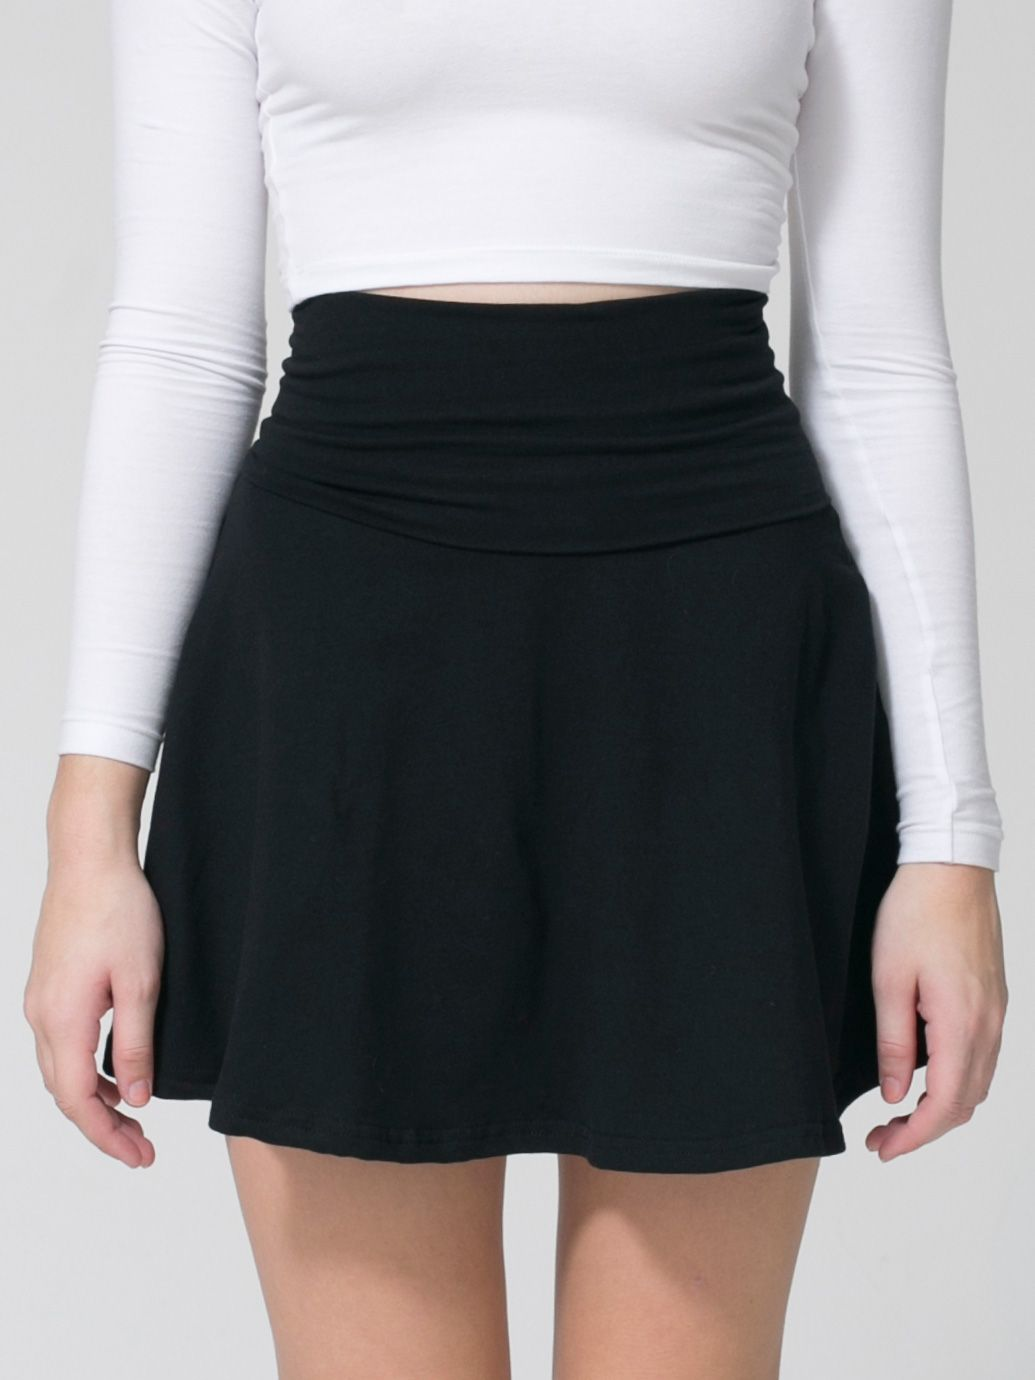 How to jersey a wear knit skirt rare photo